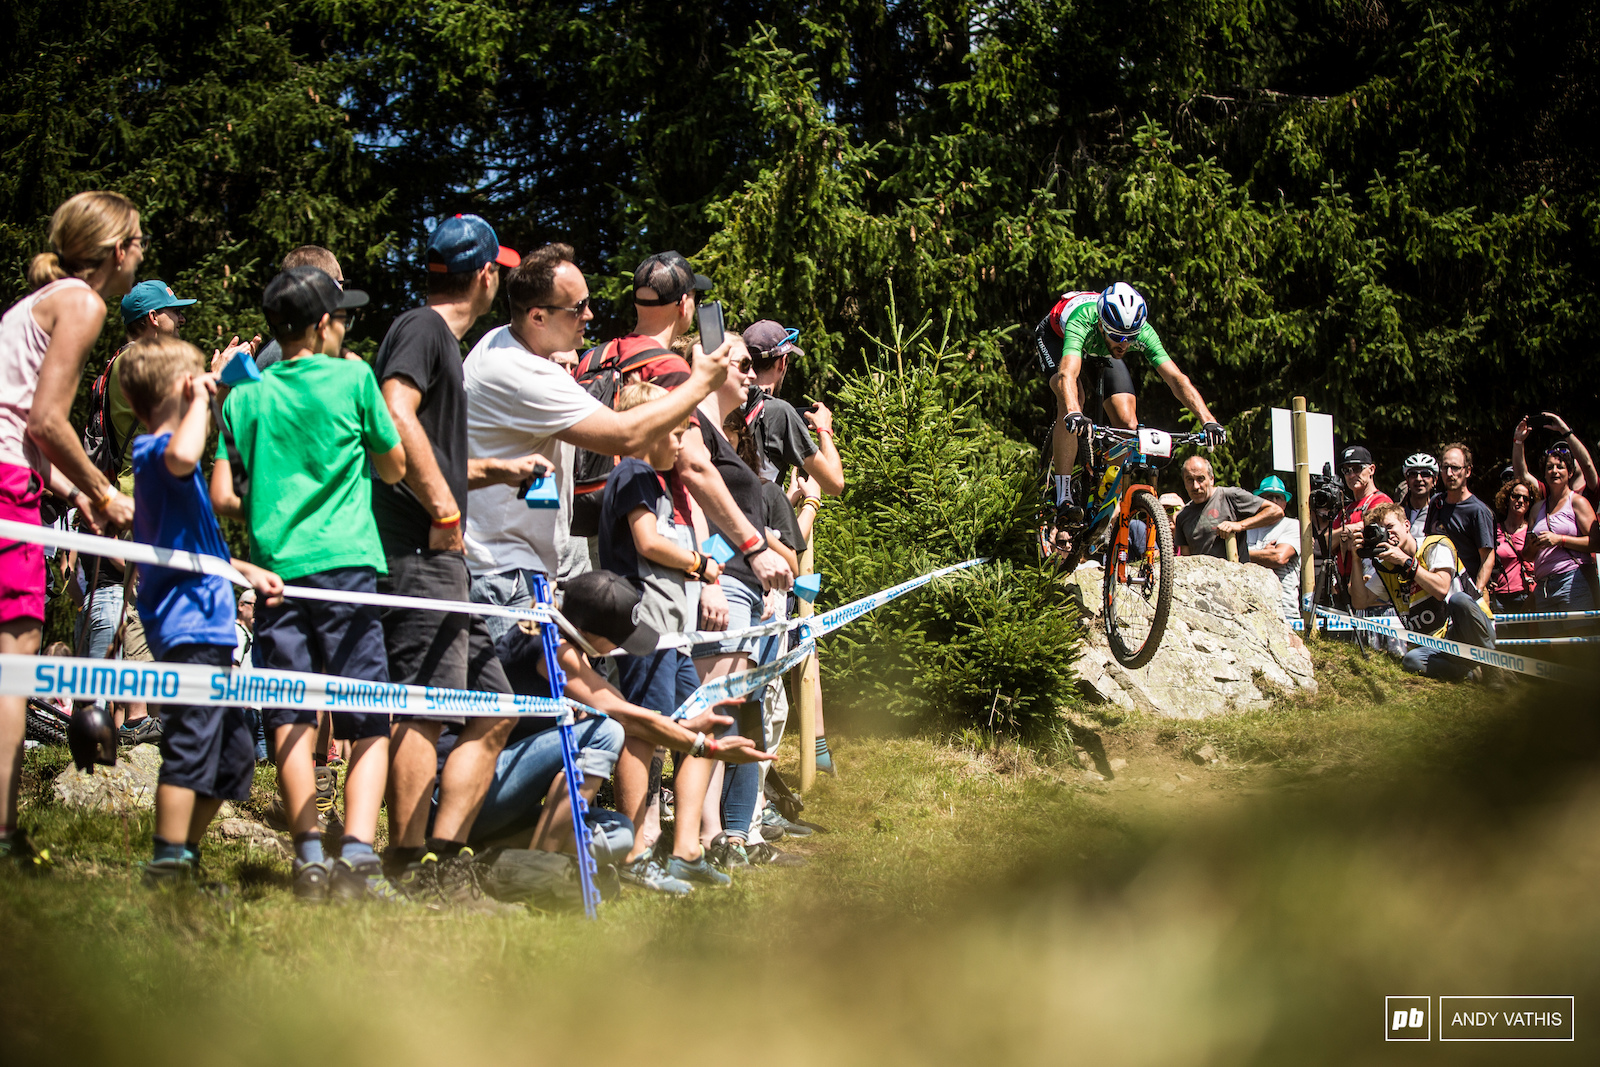 Gerhard Kerschbaumer rolling off the drop above the dual slalom section for the final spot on the podium.